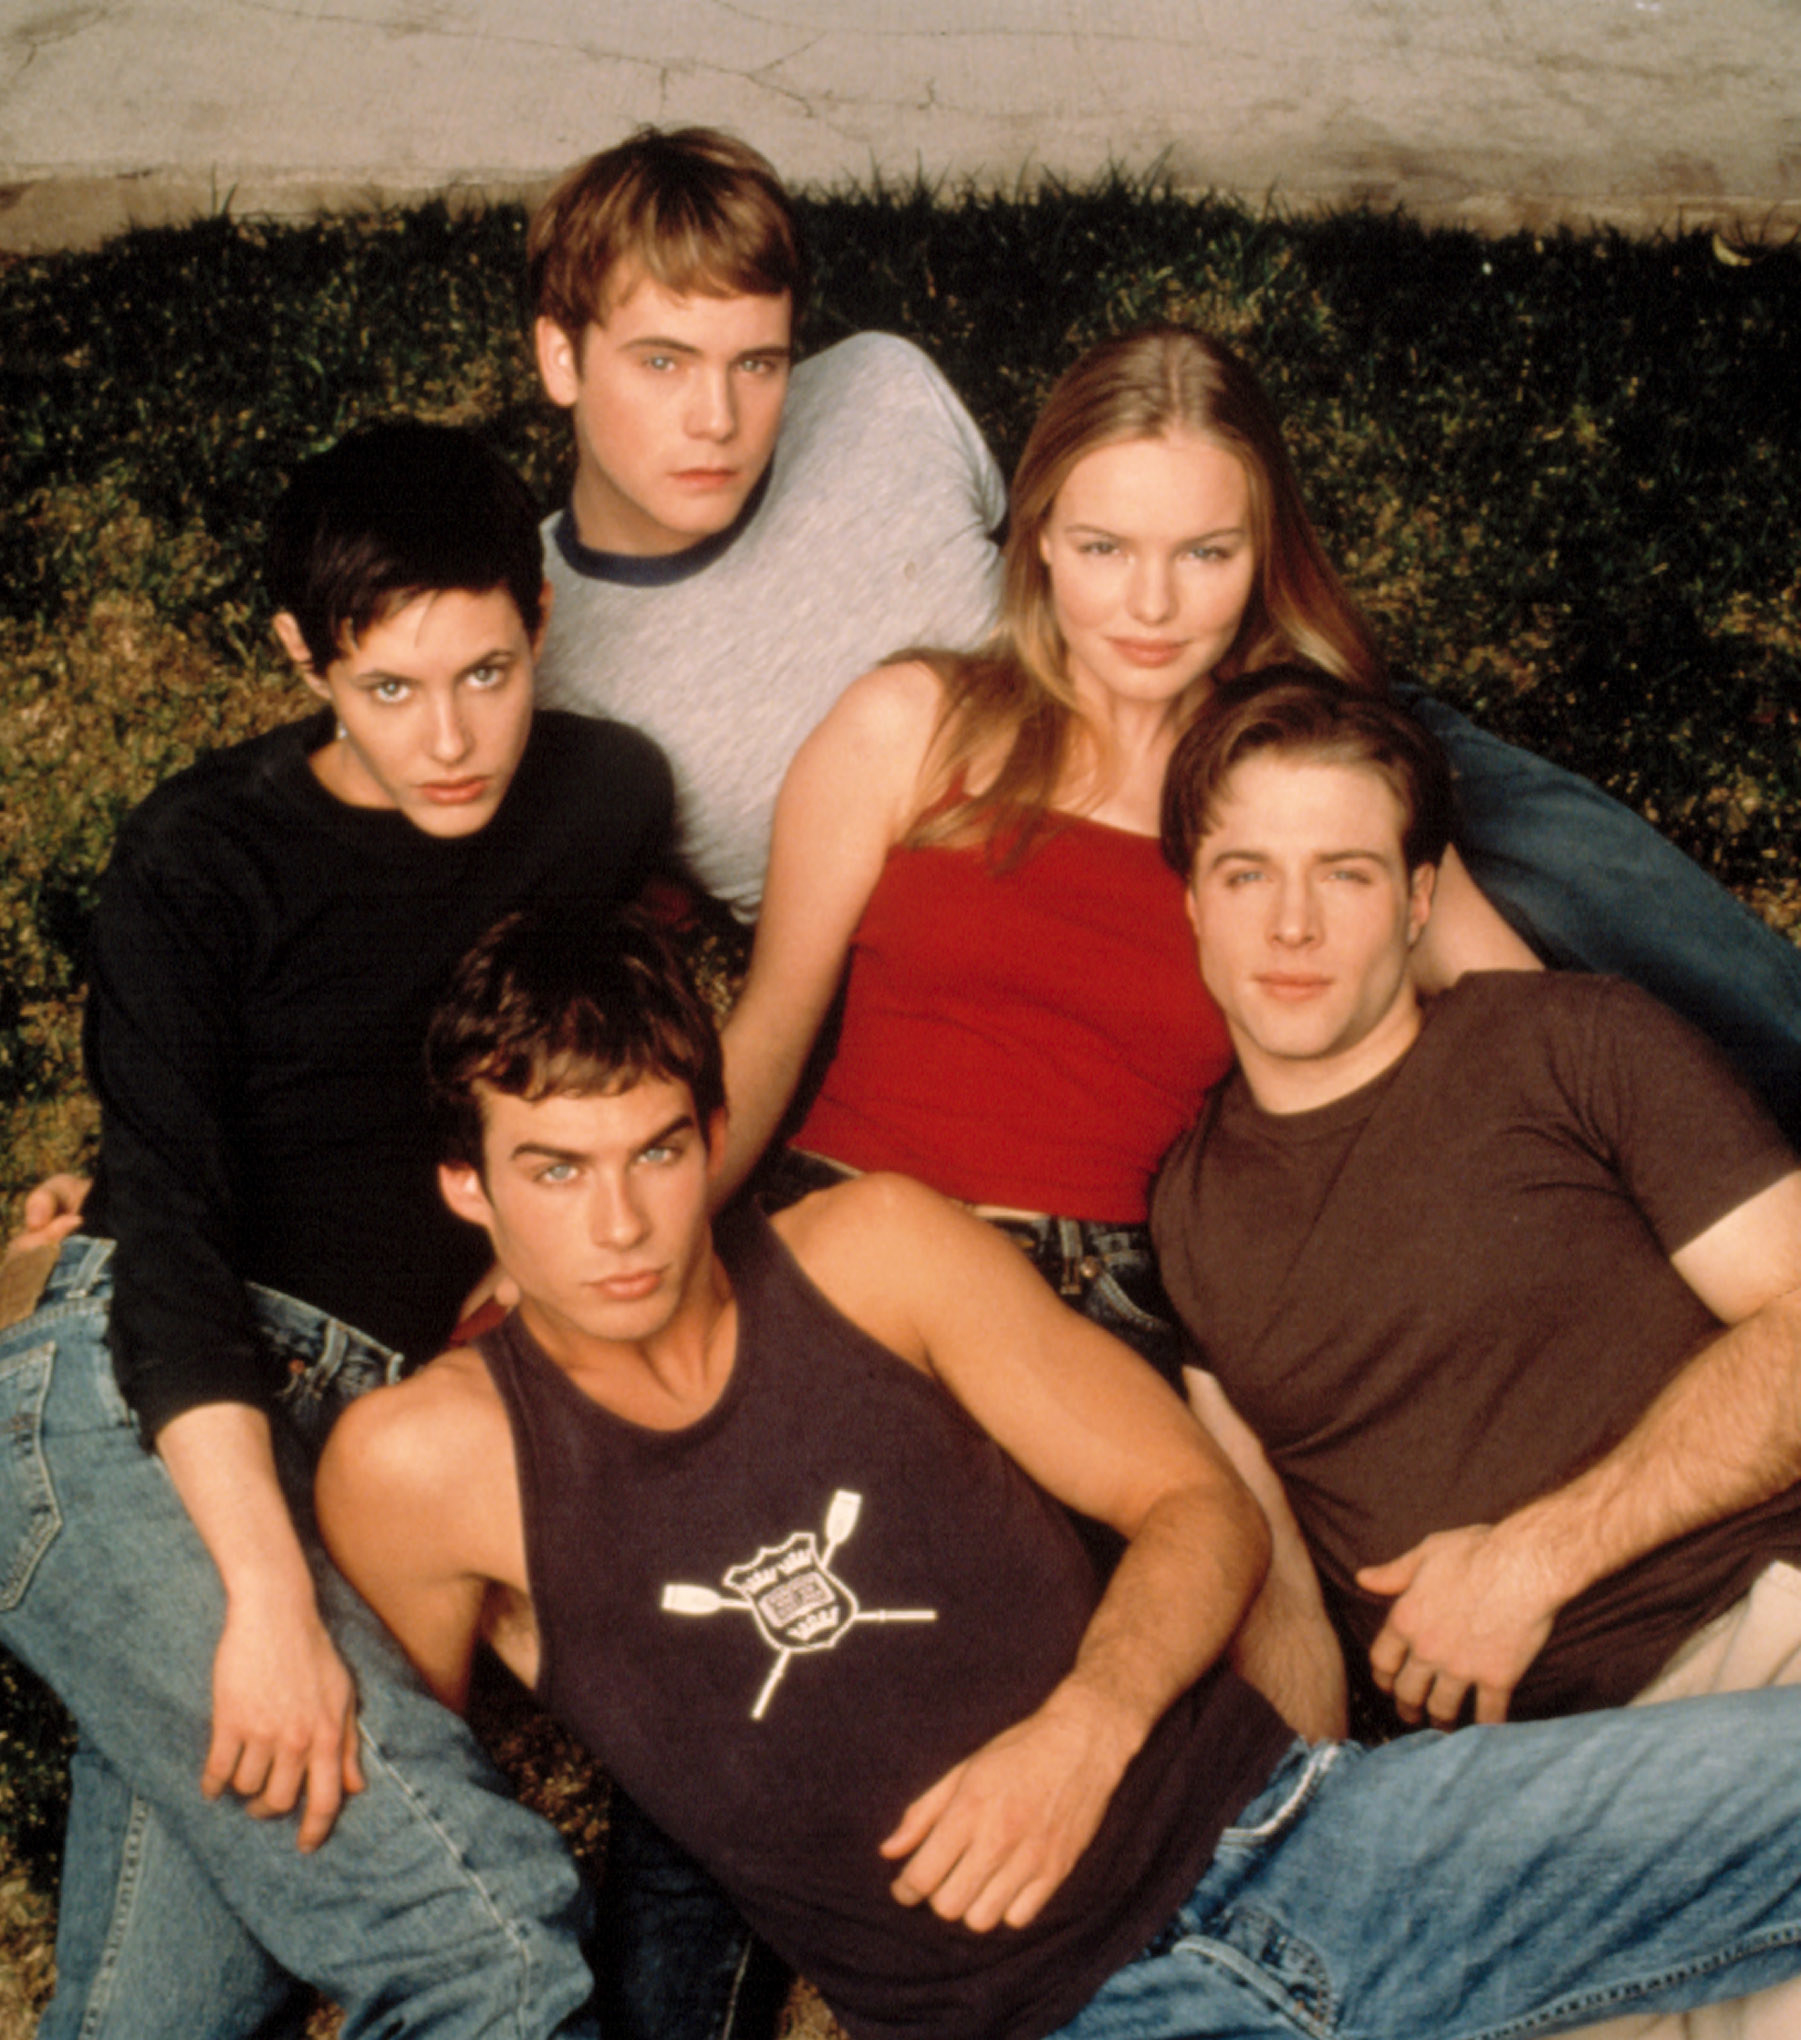 The five cast members posing on the ground